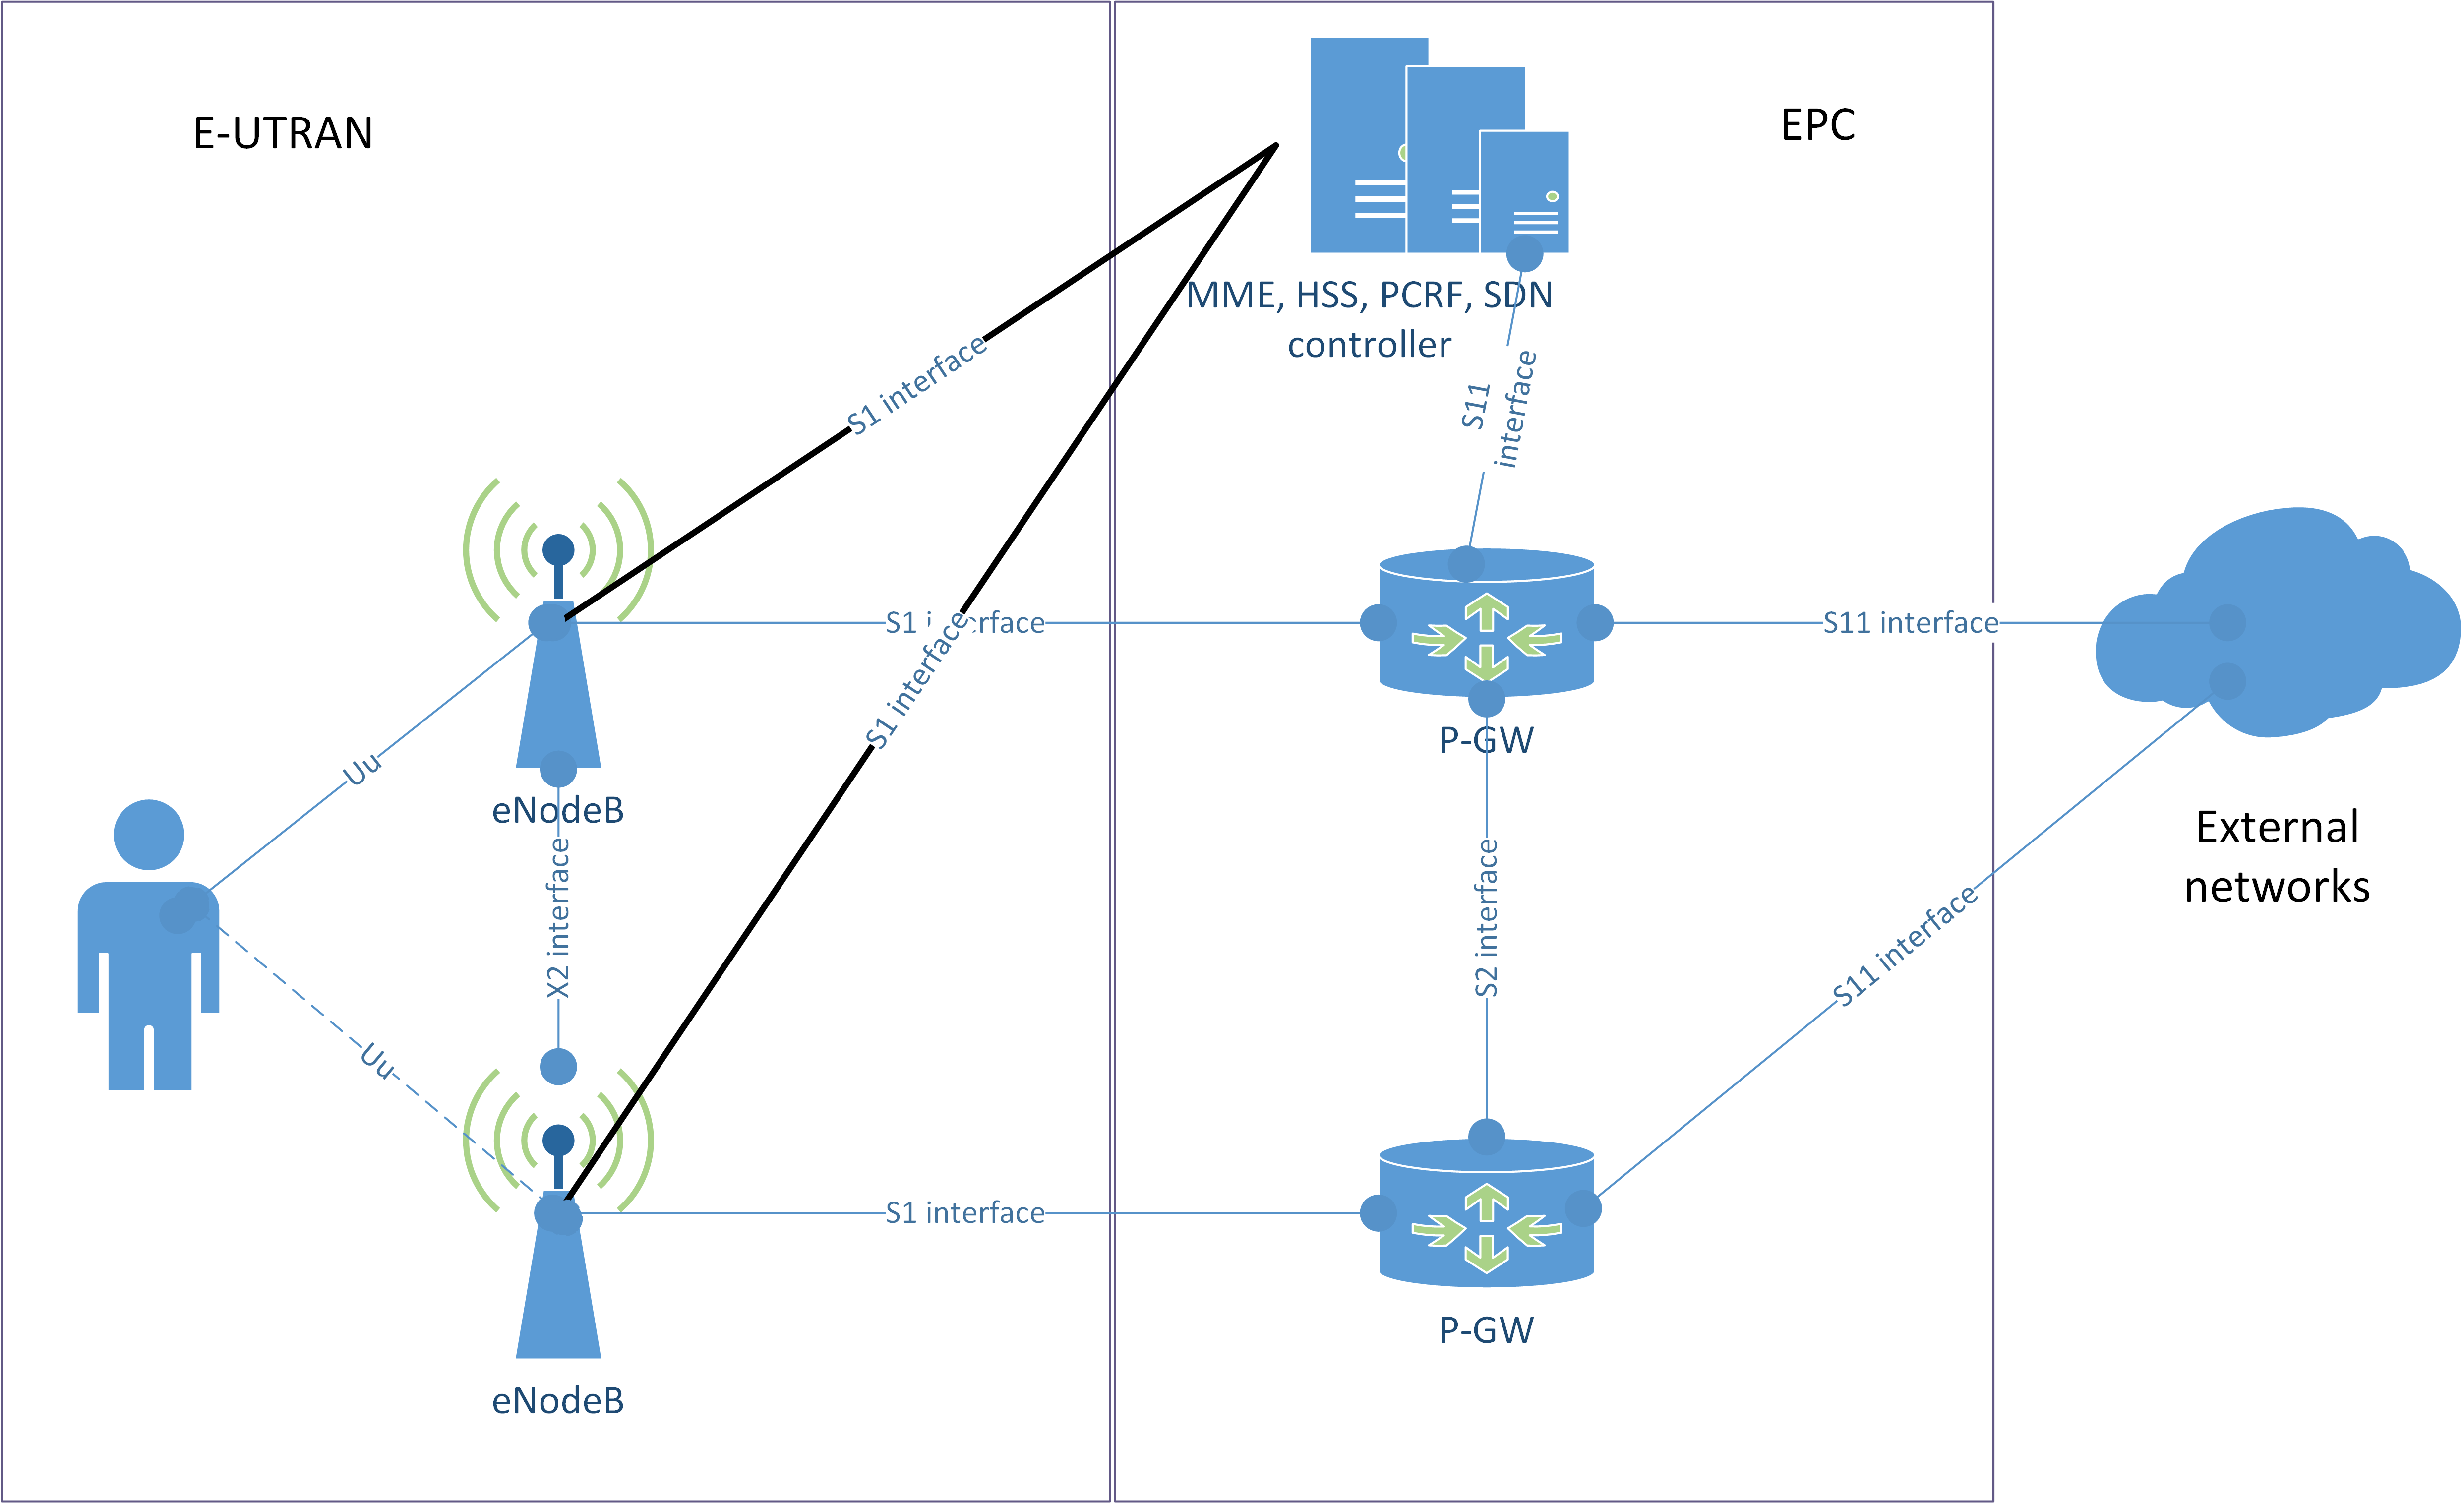 Figure 1. SDN enabled LTE network architecture with DMM solution